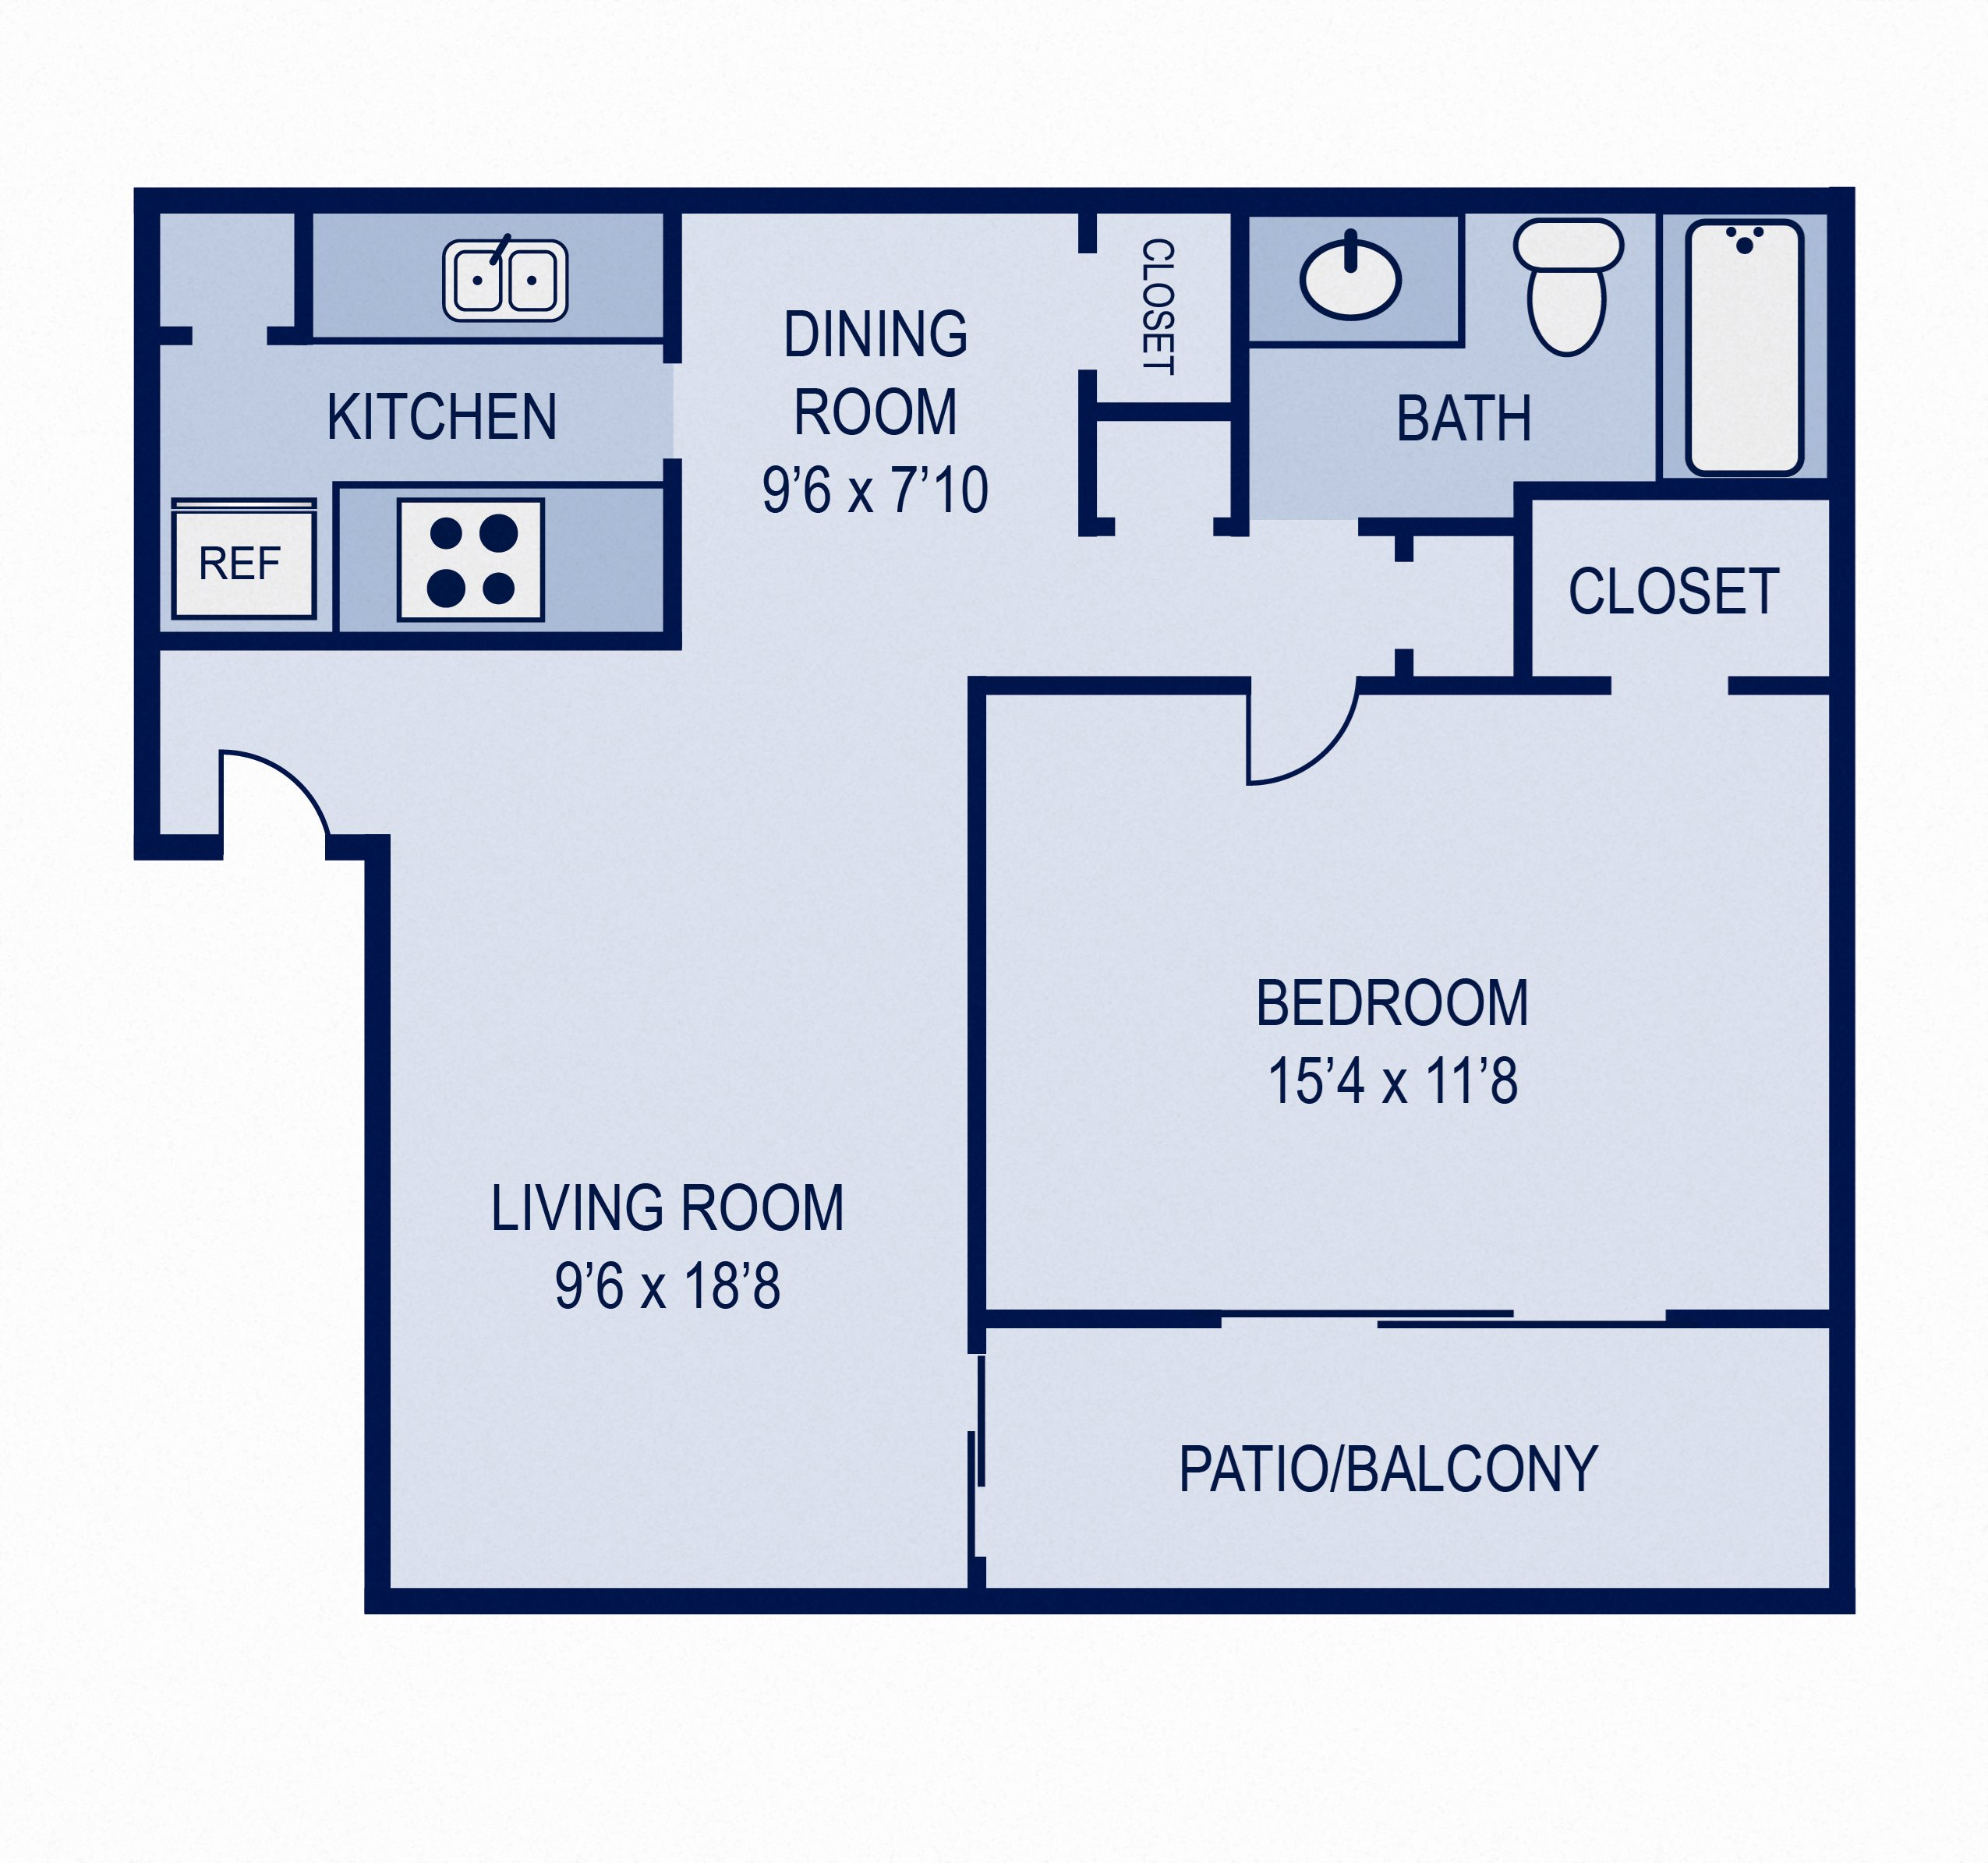 Floorplan A1 Floor Plan 2